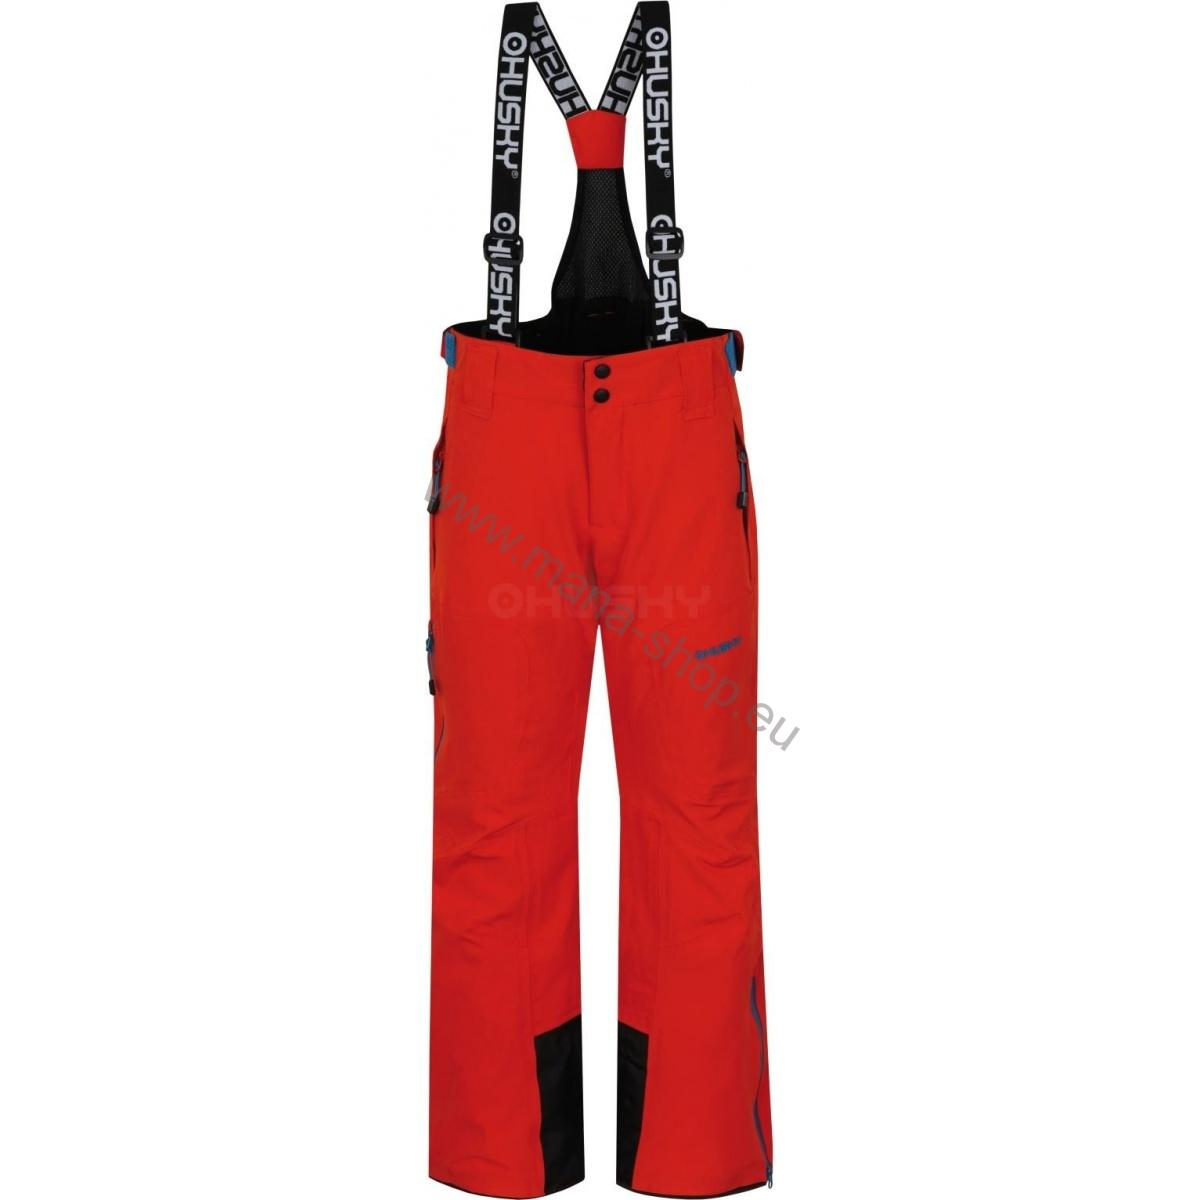 Kinder Skihose ZEUS K orange